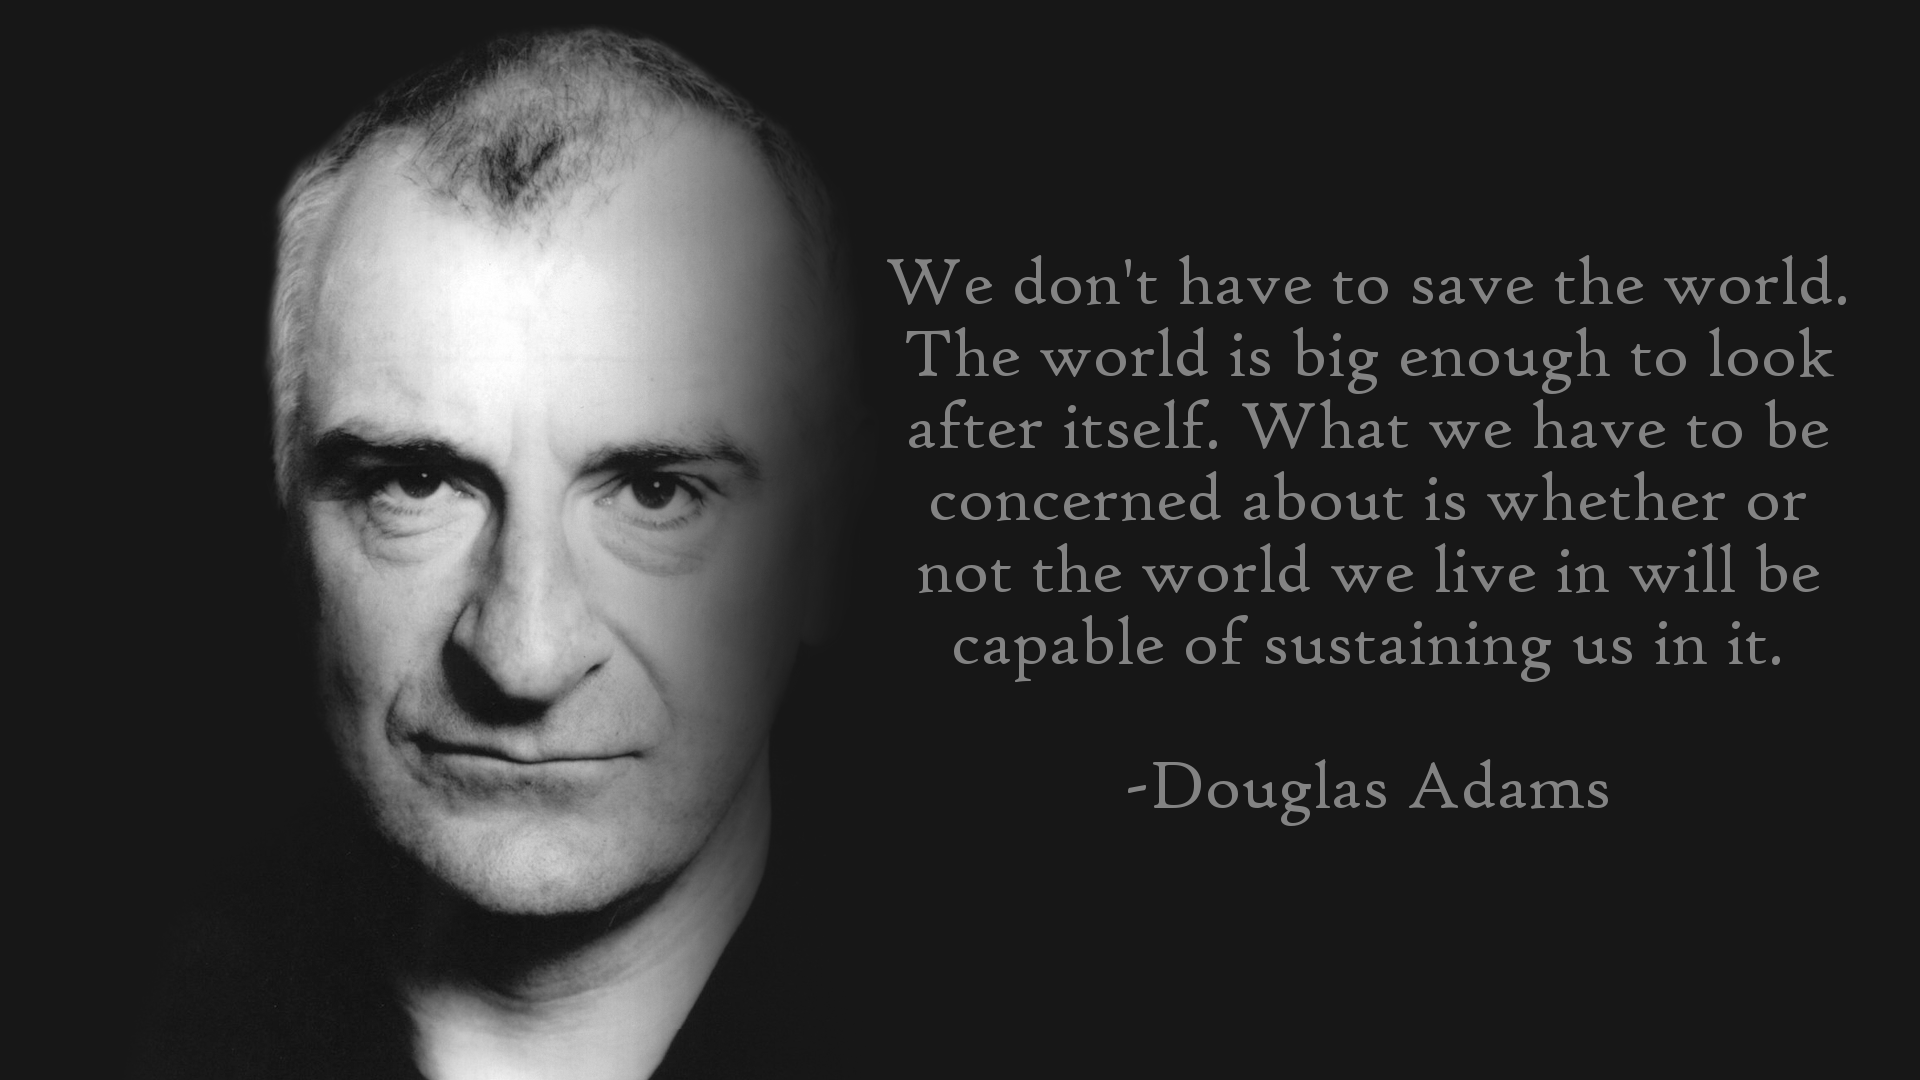 Net The 10 Most Overlooked Existential Quotes of Douglas Adams | Nerd .